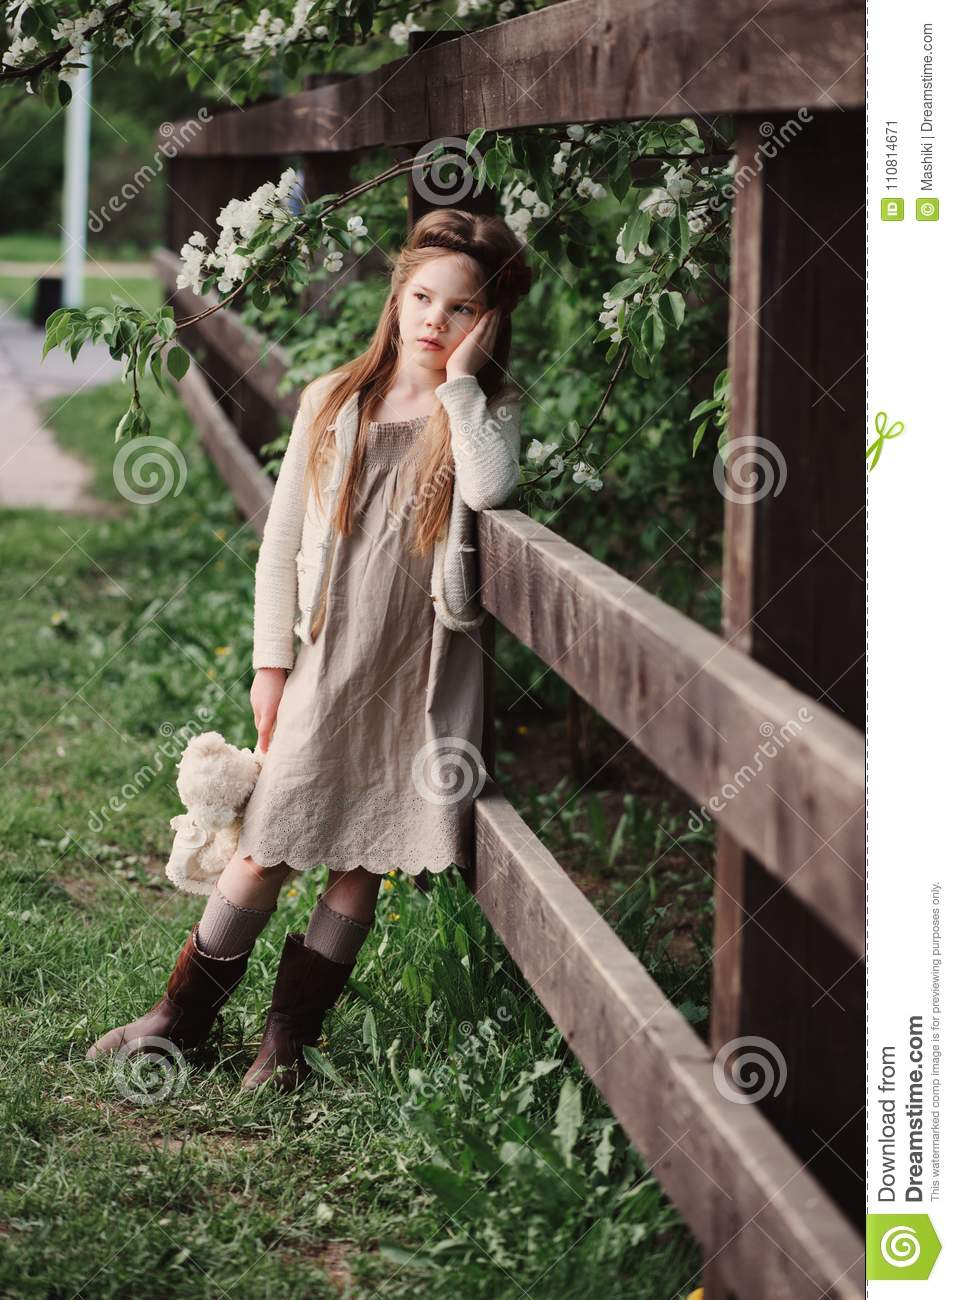 Cute dreamy child girl posing at rustic wooden fence with teddy bear